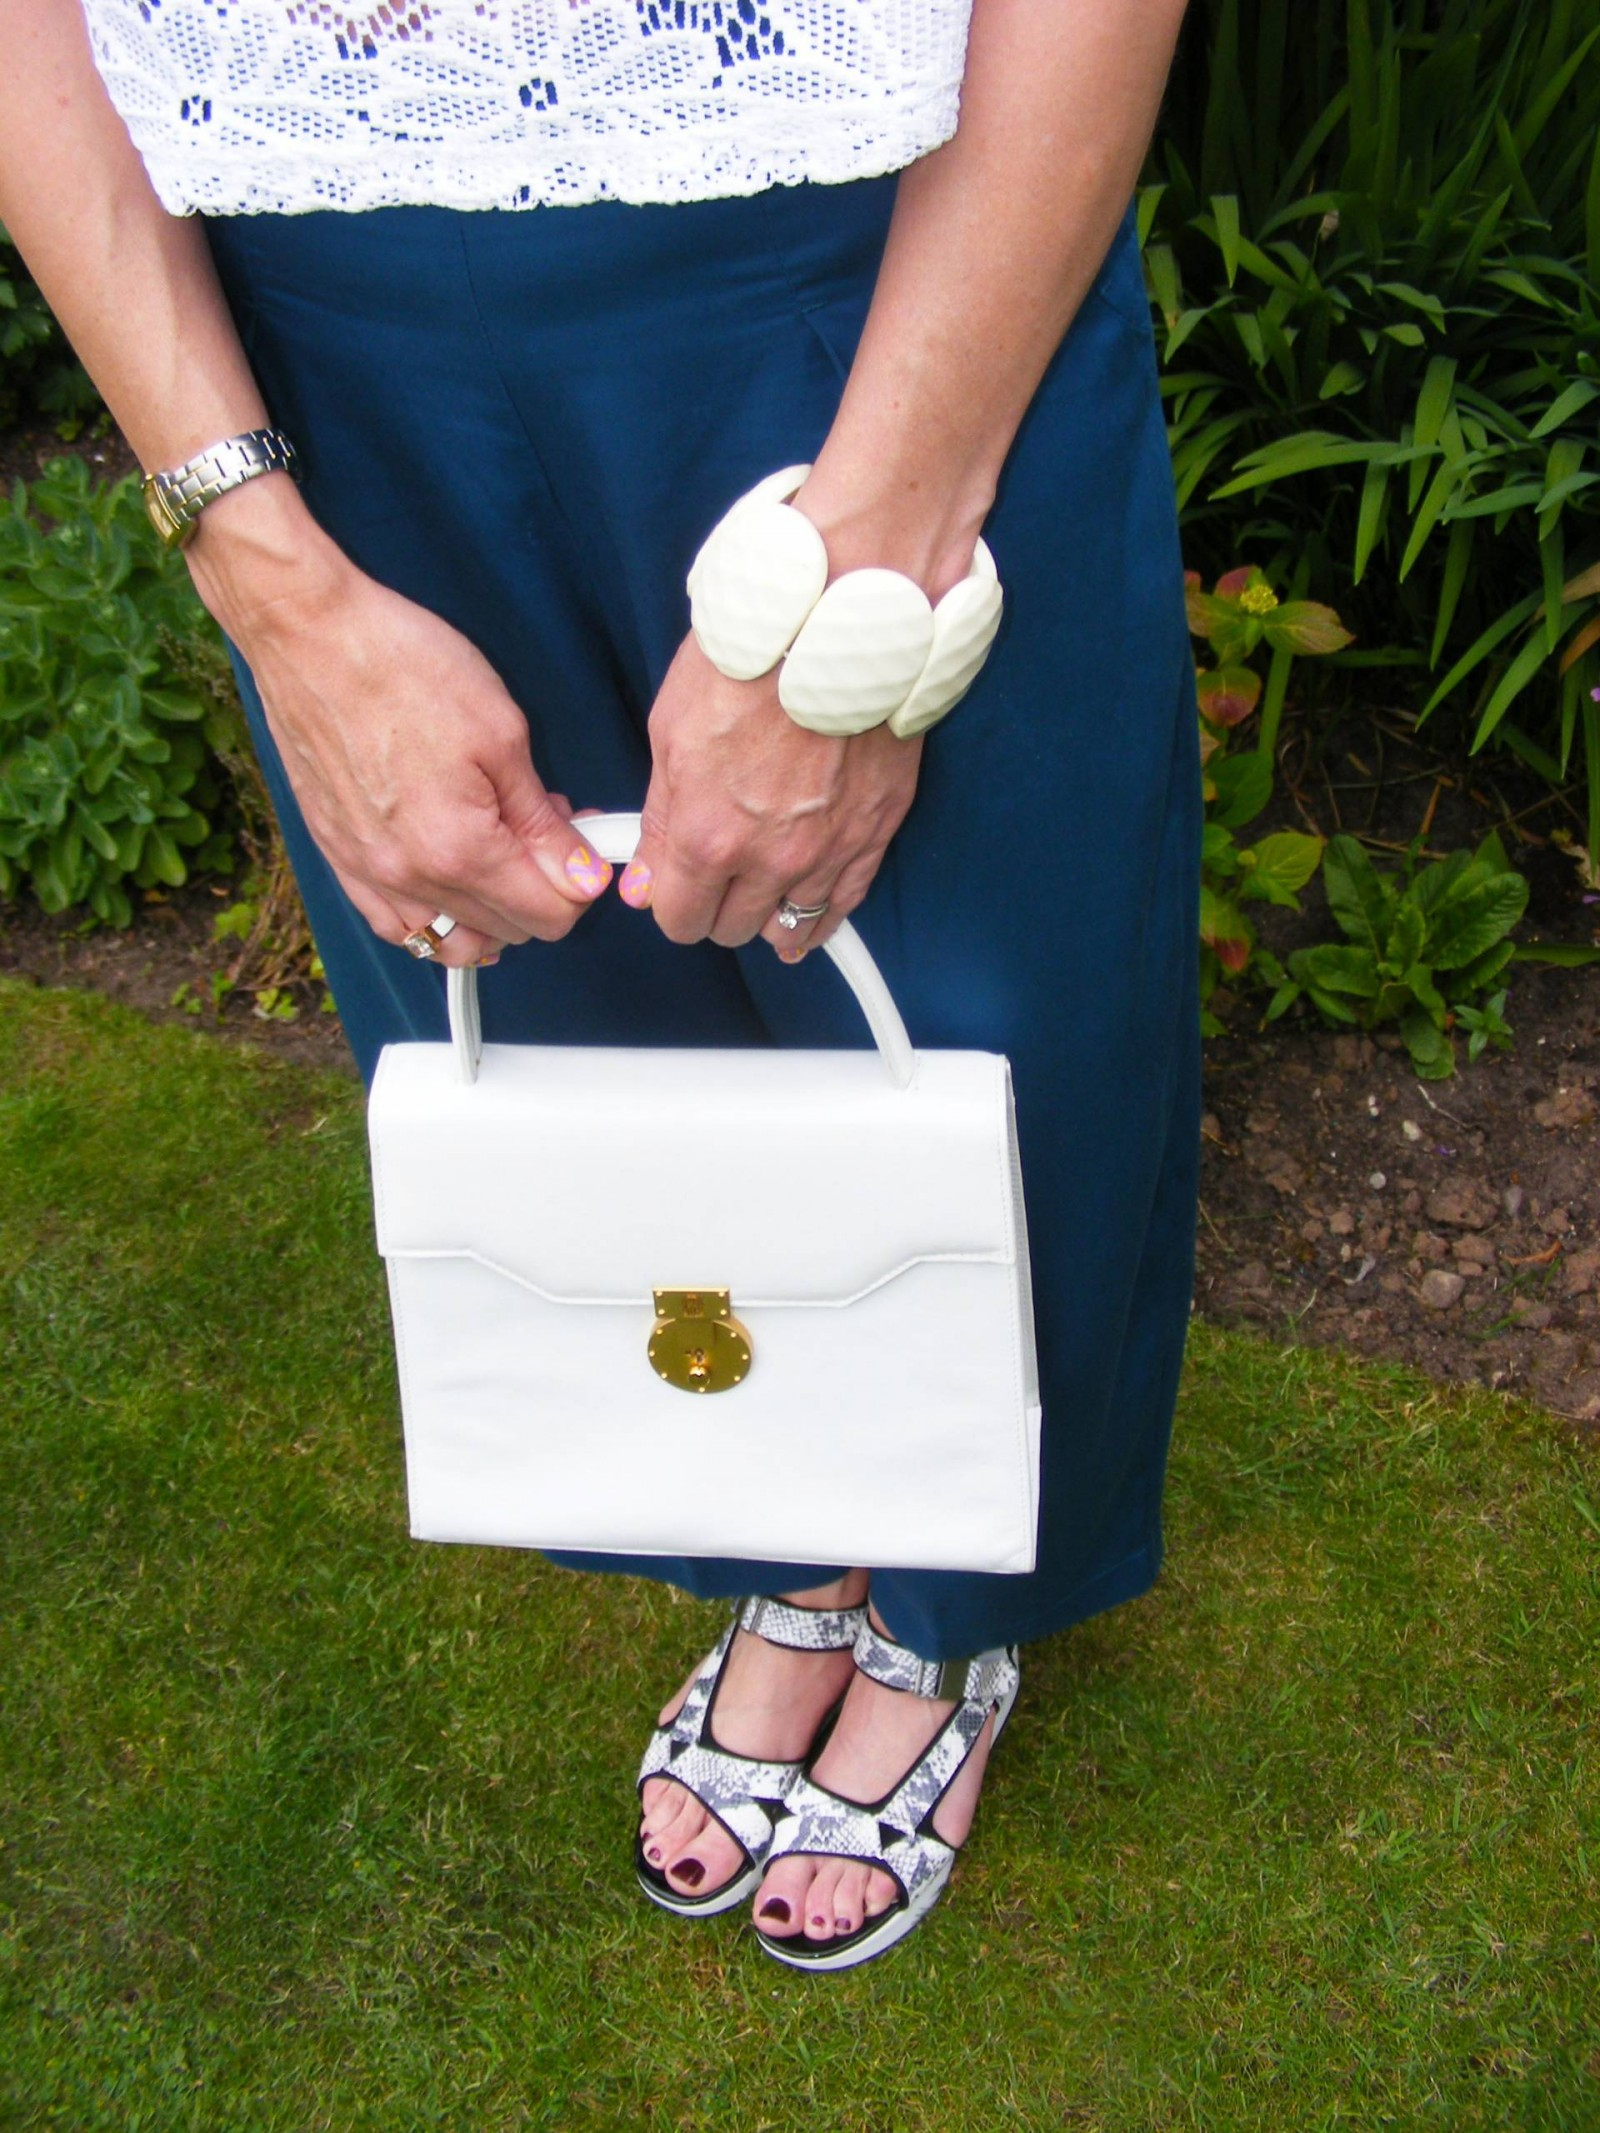 Clarks flatform sandals and Michelangelo white leather bag